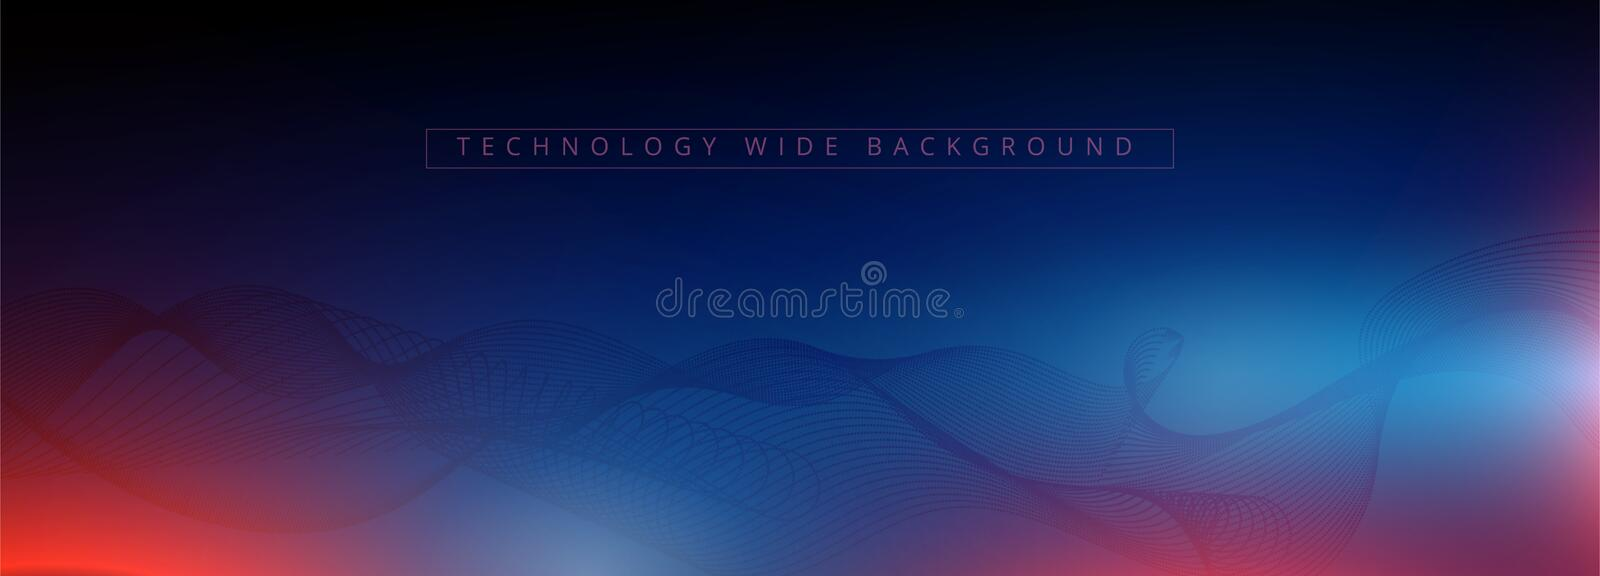 Abstract 3d technology and science neon visualization. Blockchain and cryptocurrency. Digital wallpaper. Business concept. Big dat royalty free illustration